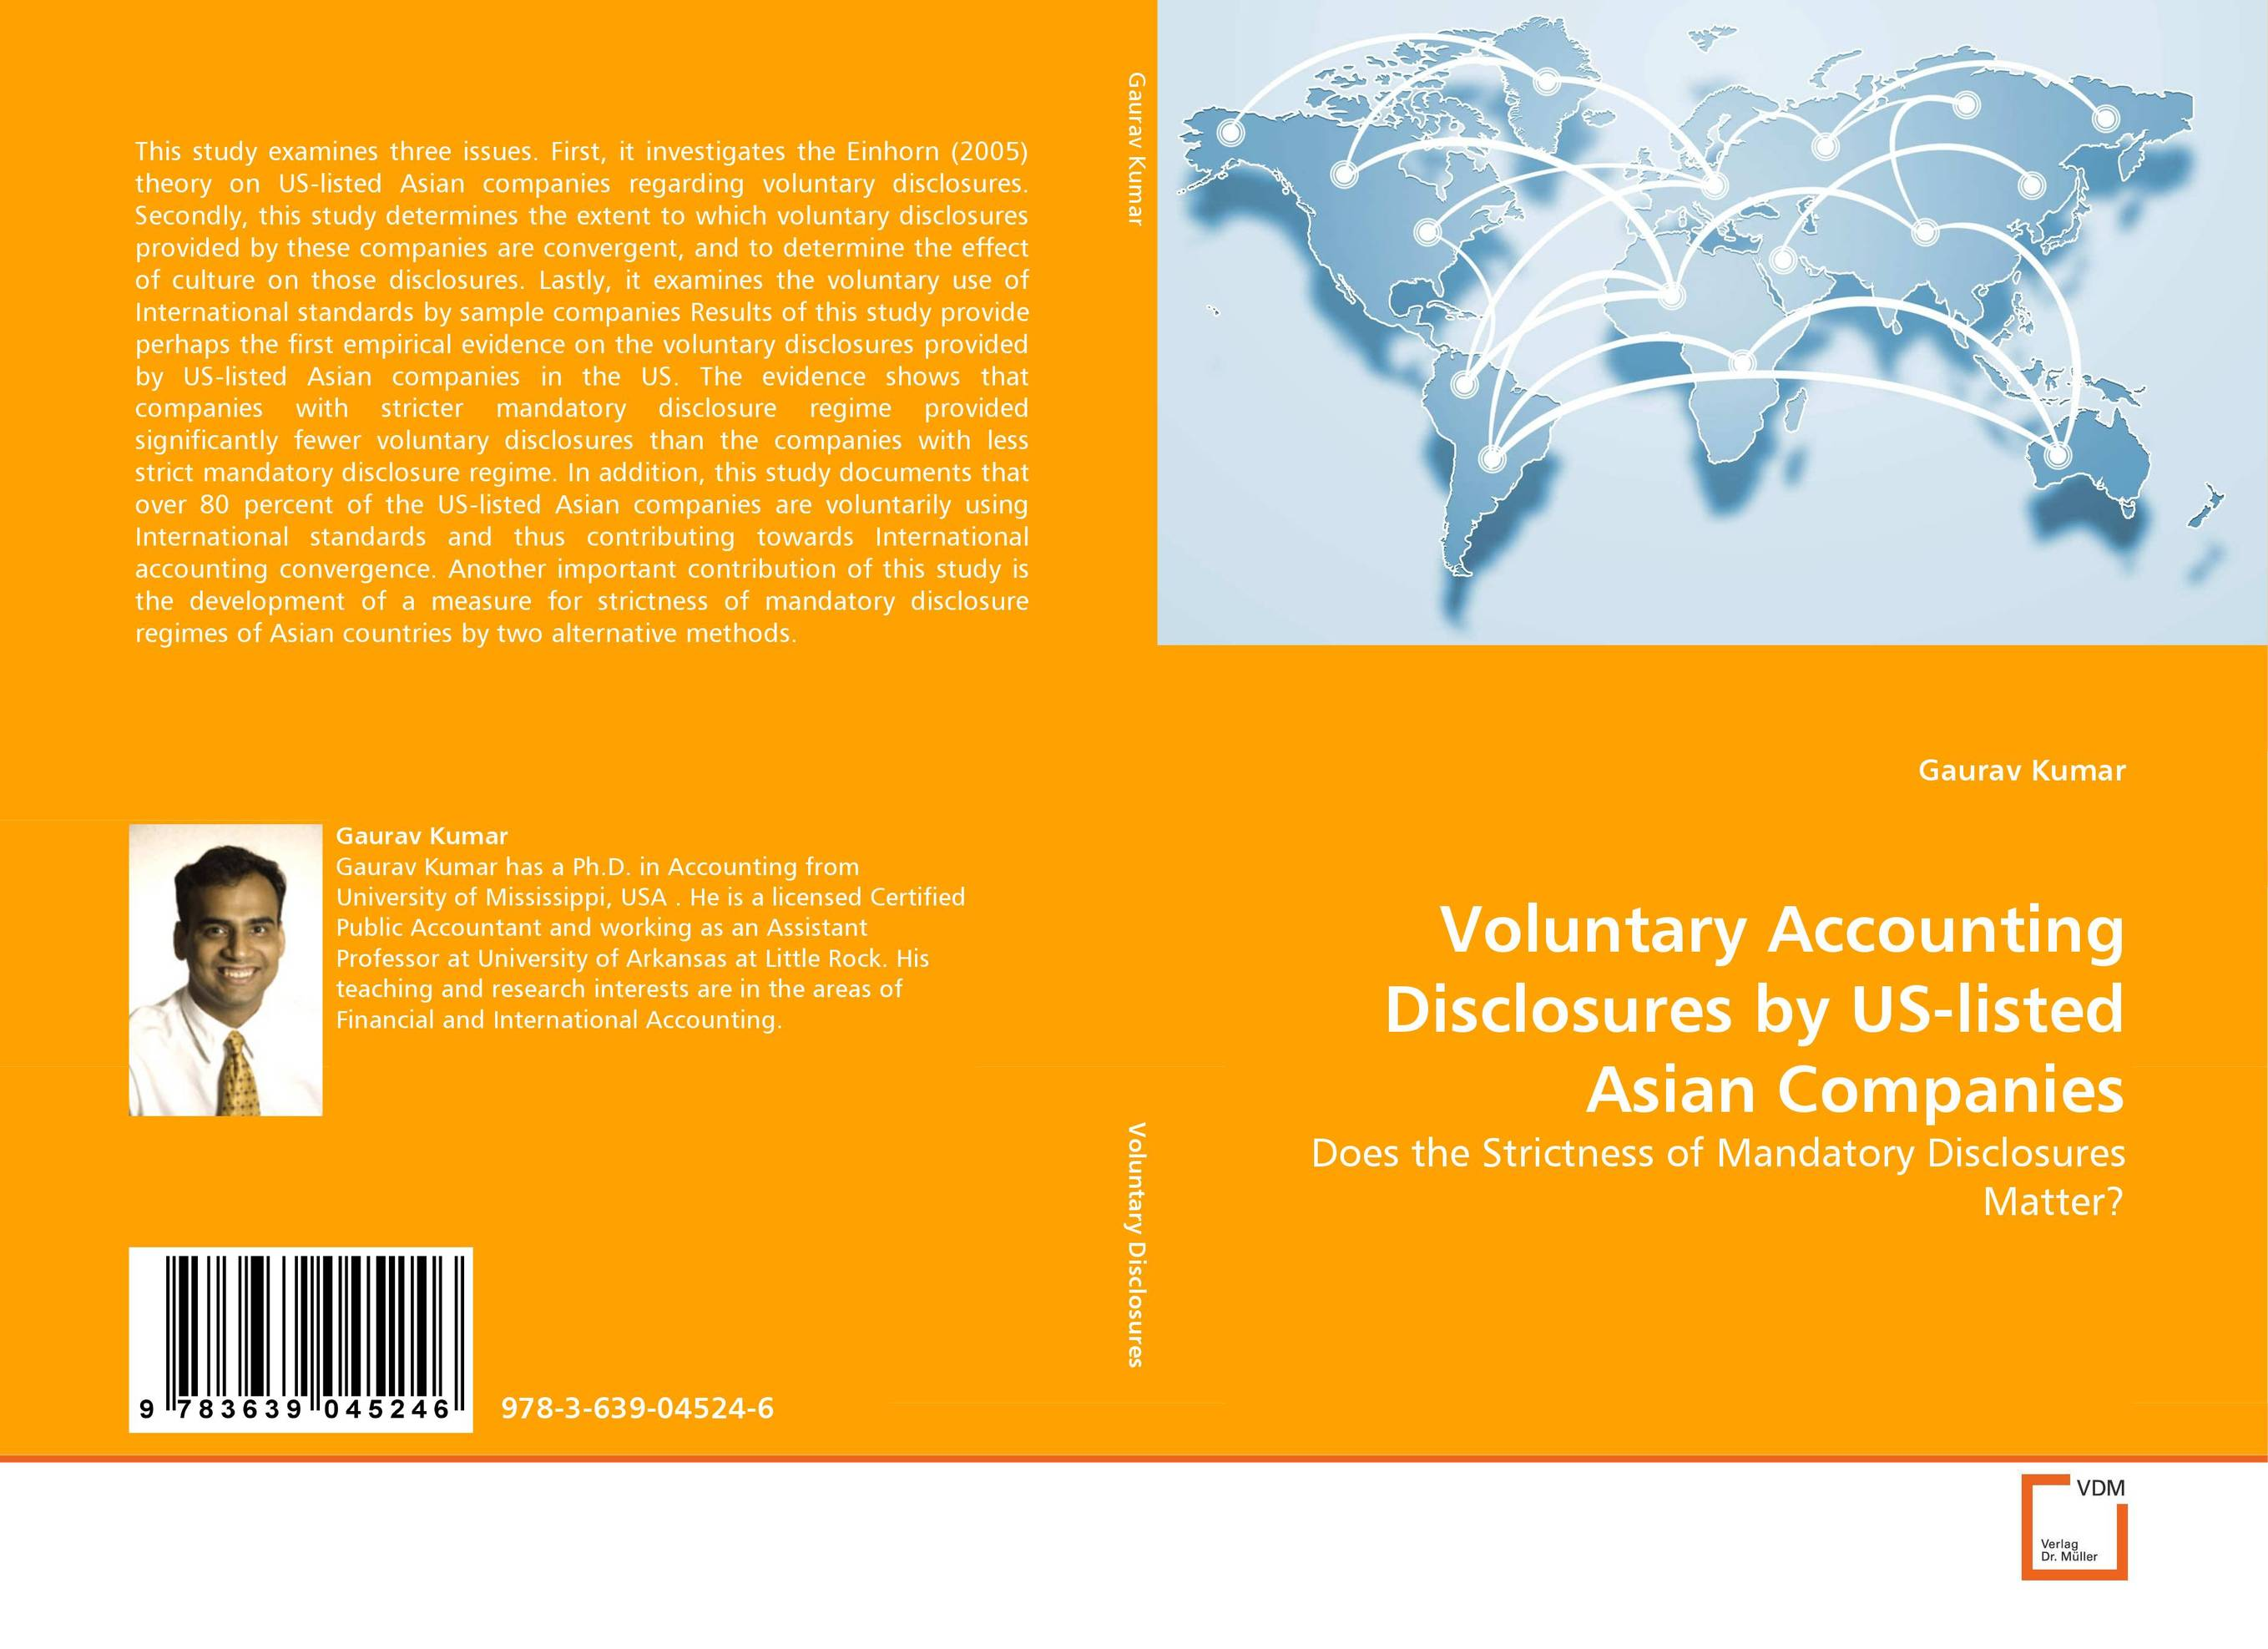 Voluntary Accounting Disclosures by US-listed Asian Companies